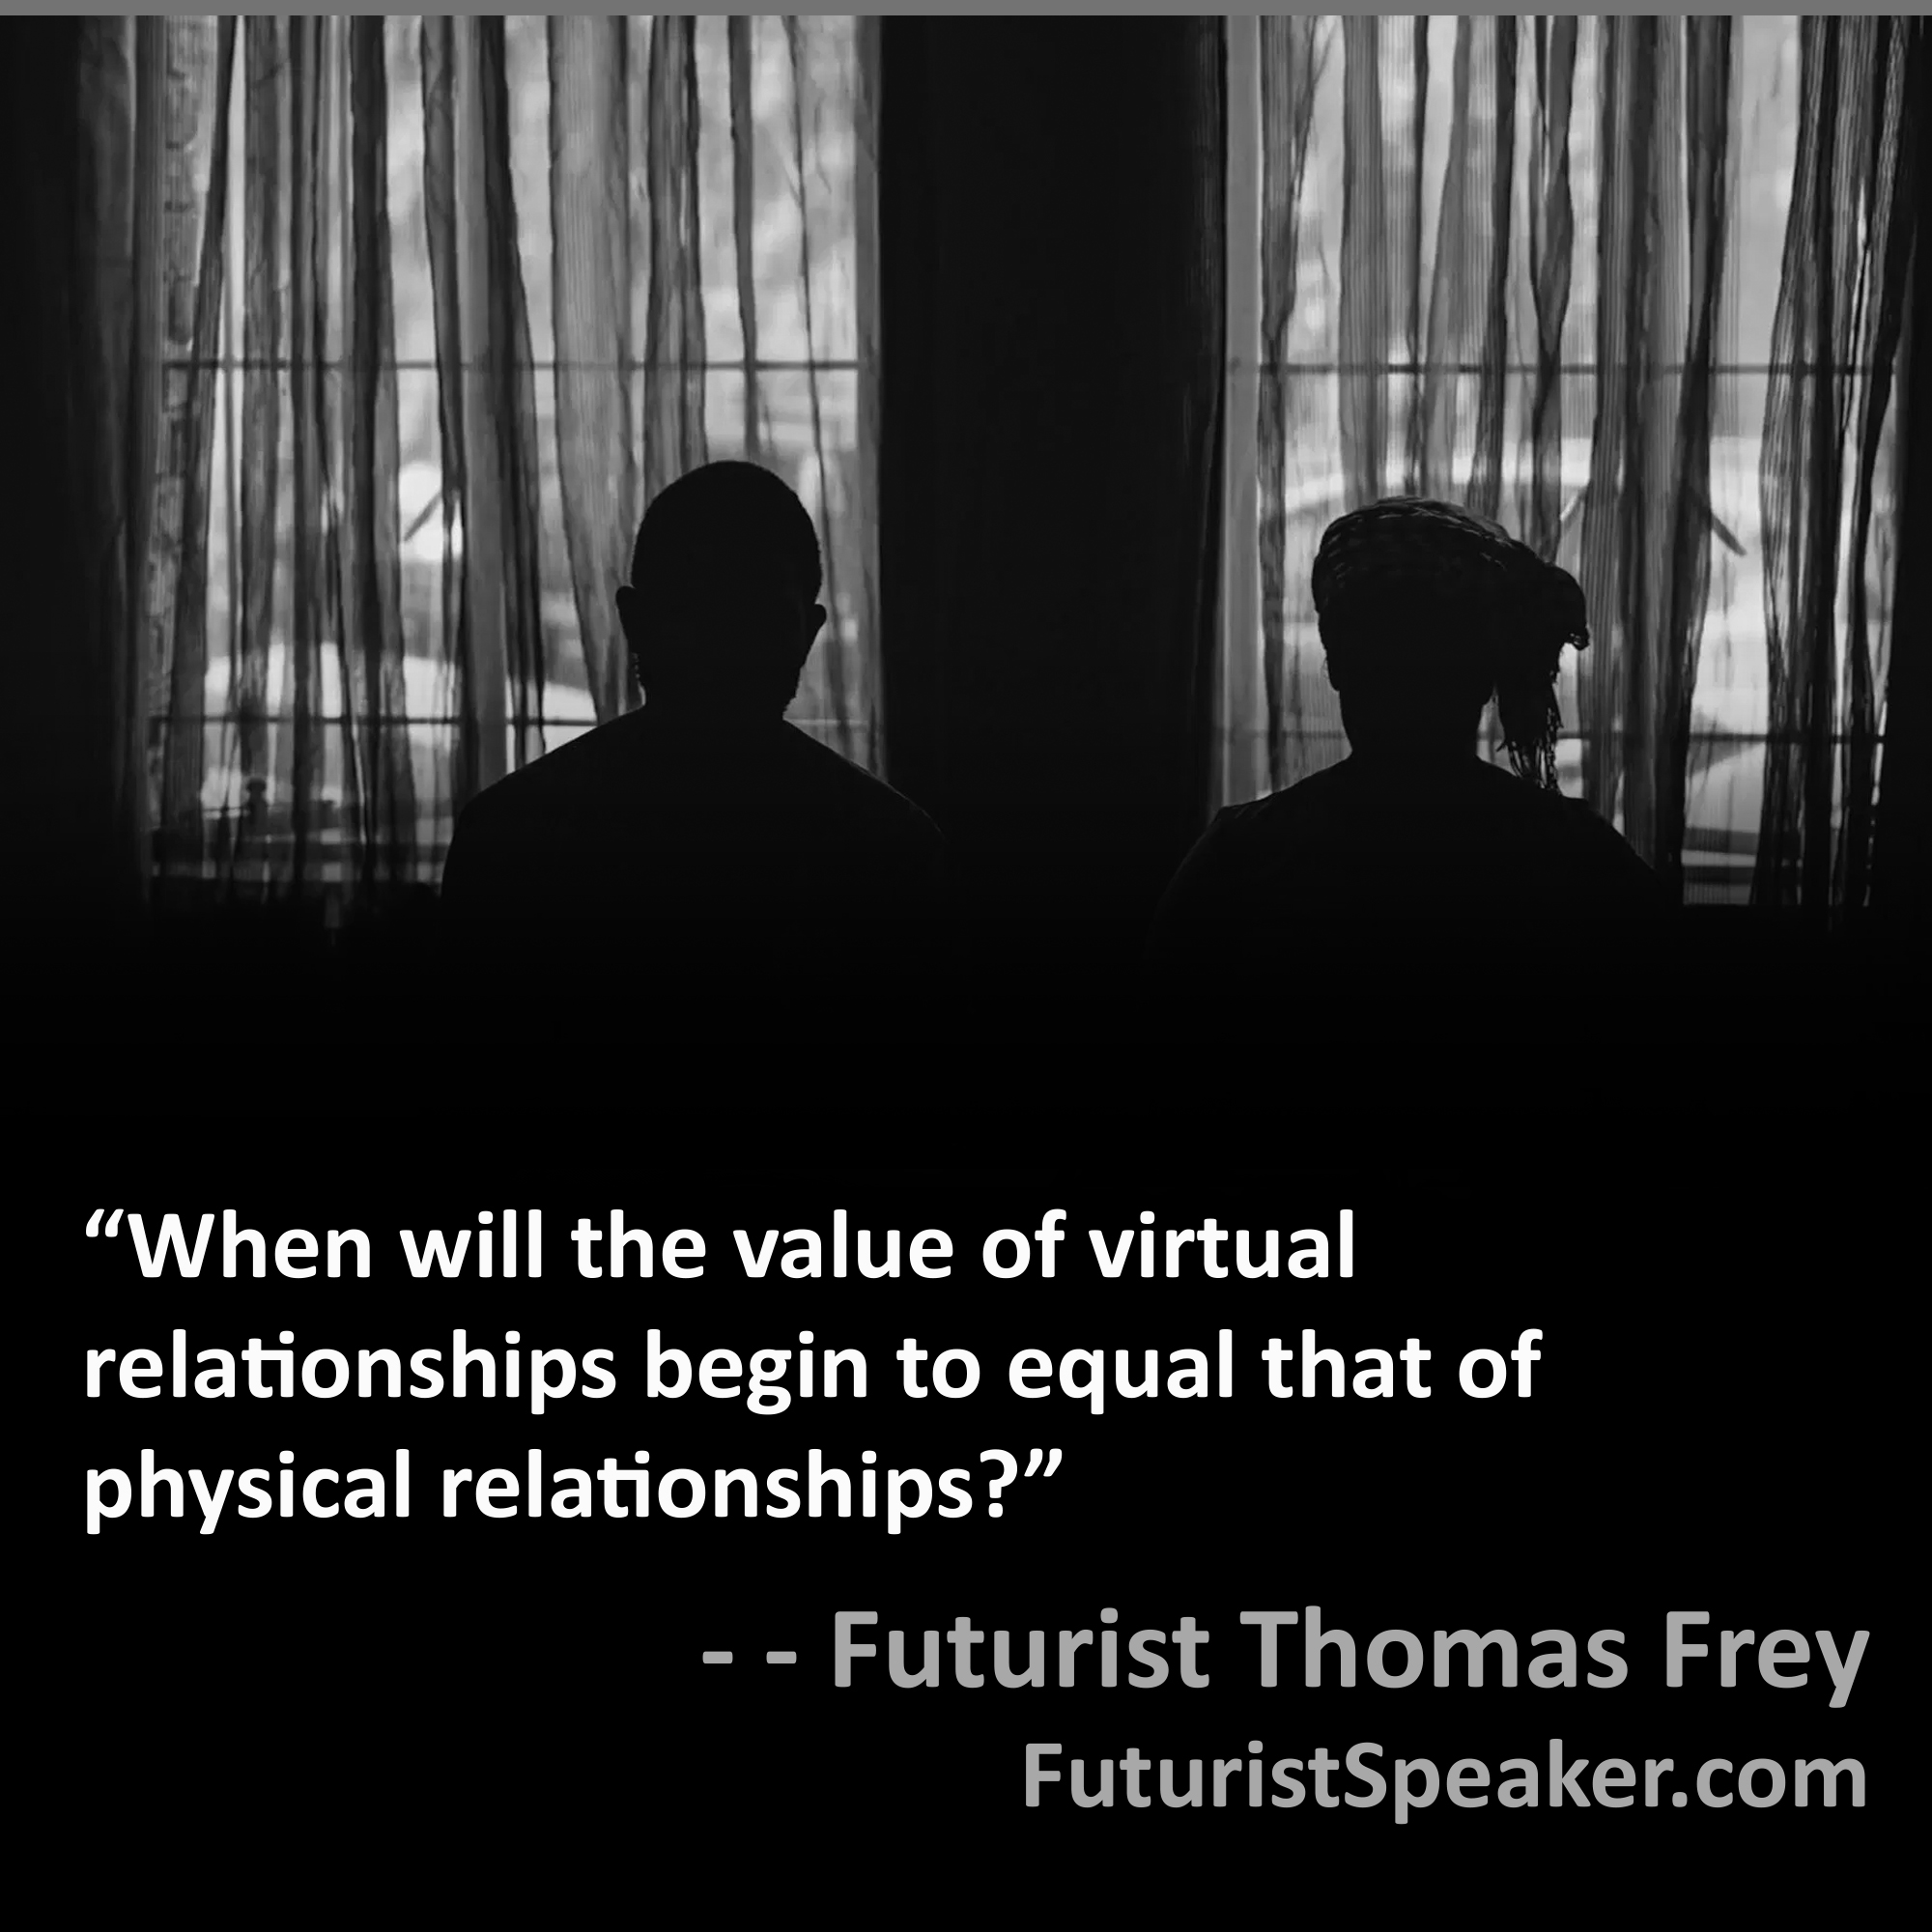 Thomas Frey Futurist Speaker Famous Quote: When will the value of virtual relationships begin to equal that of physical relationships.